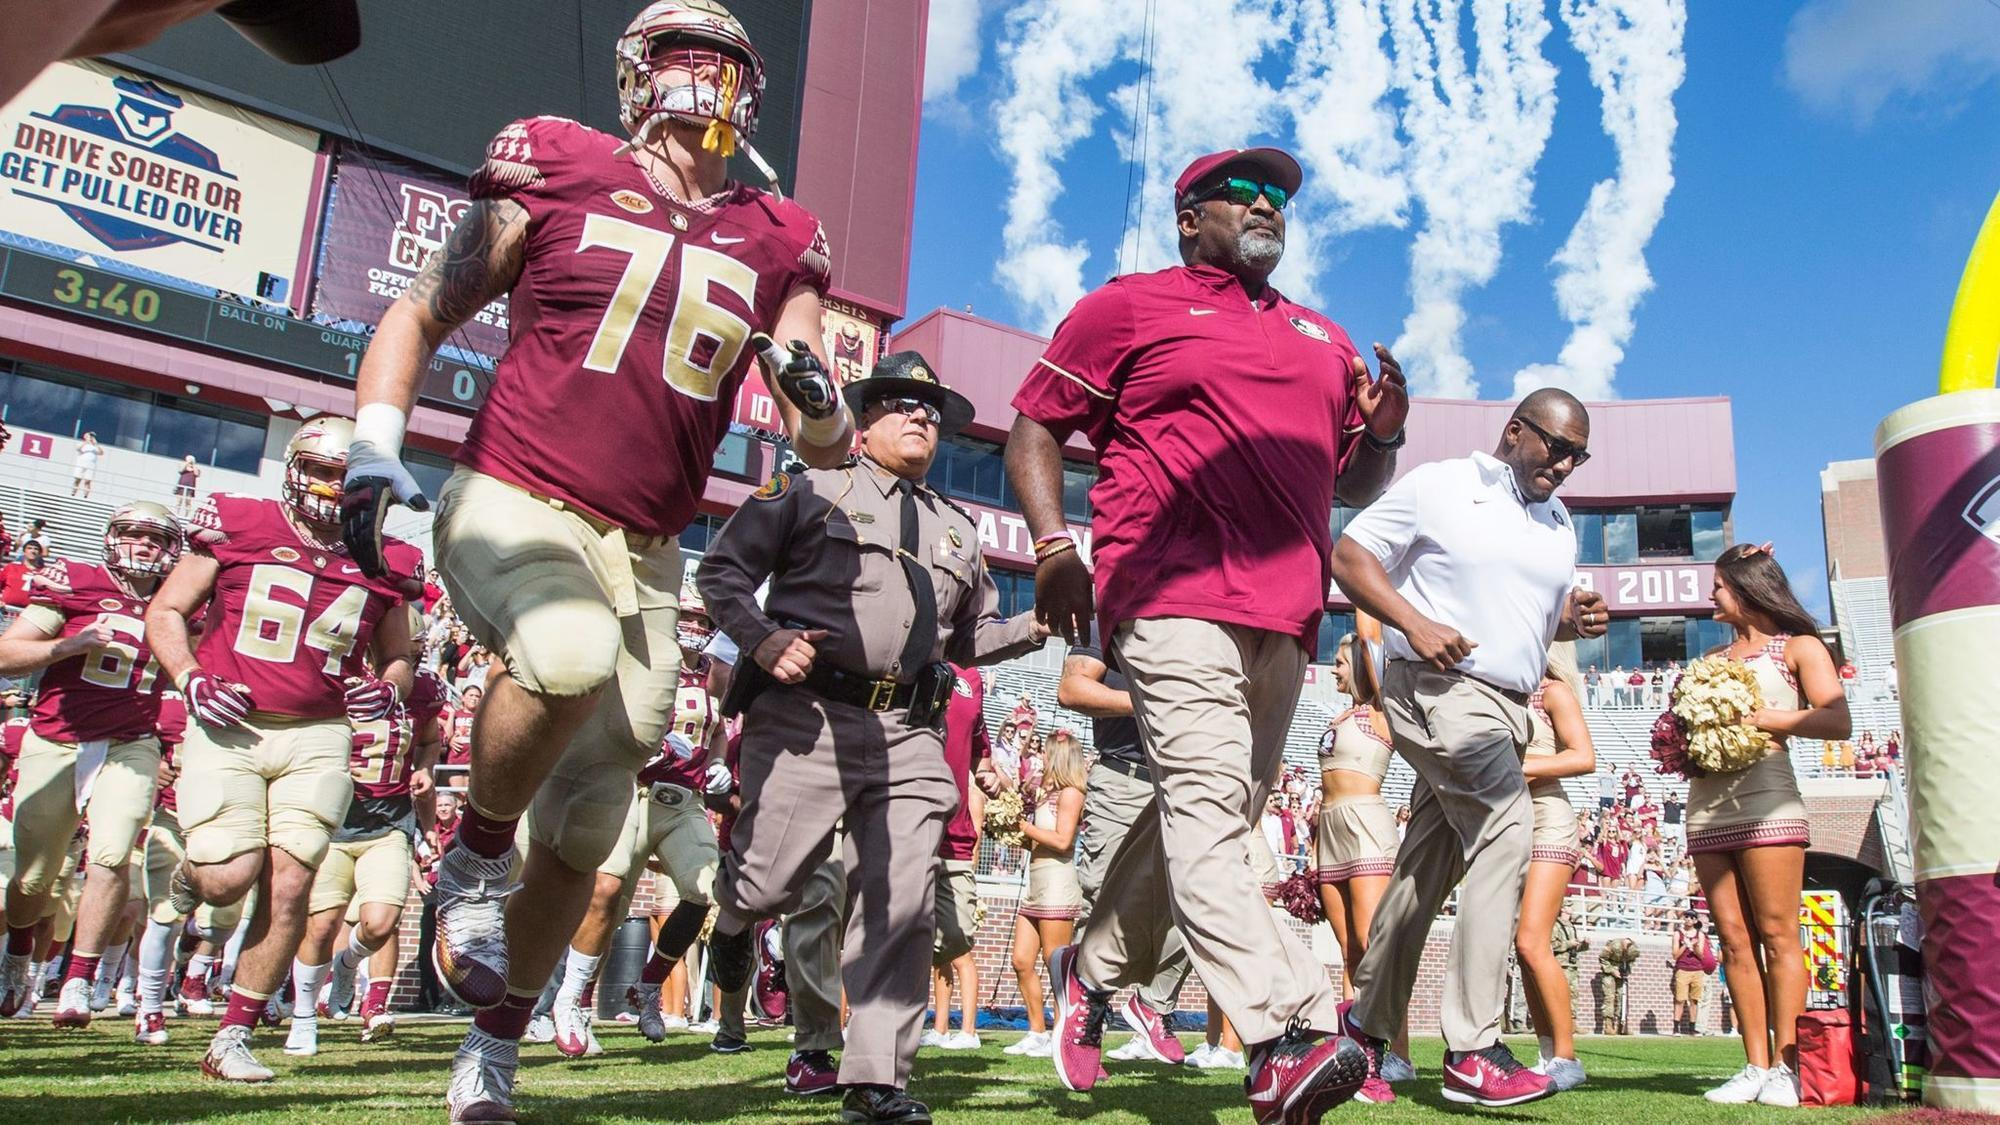 Os-sp-fsu-bowl-selection-1204